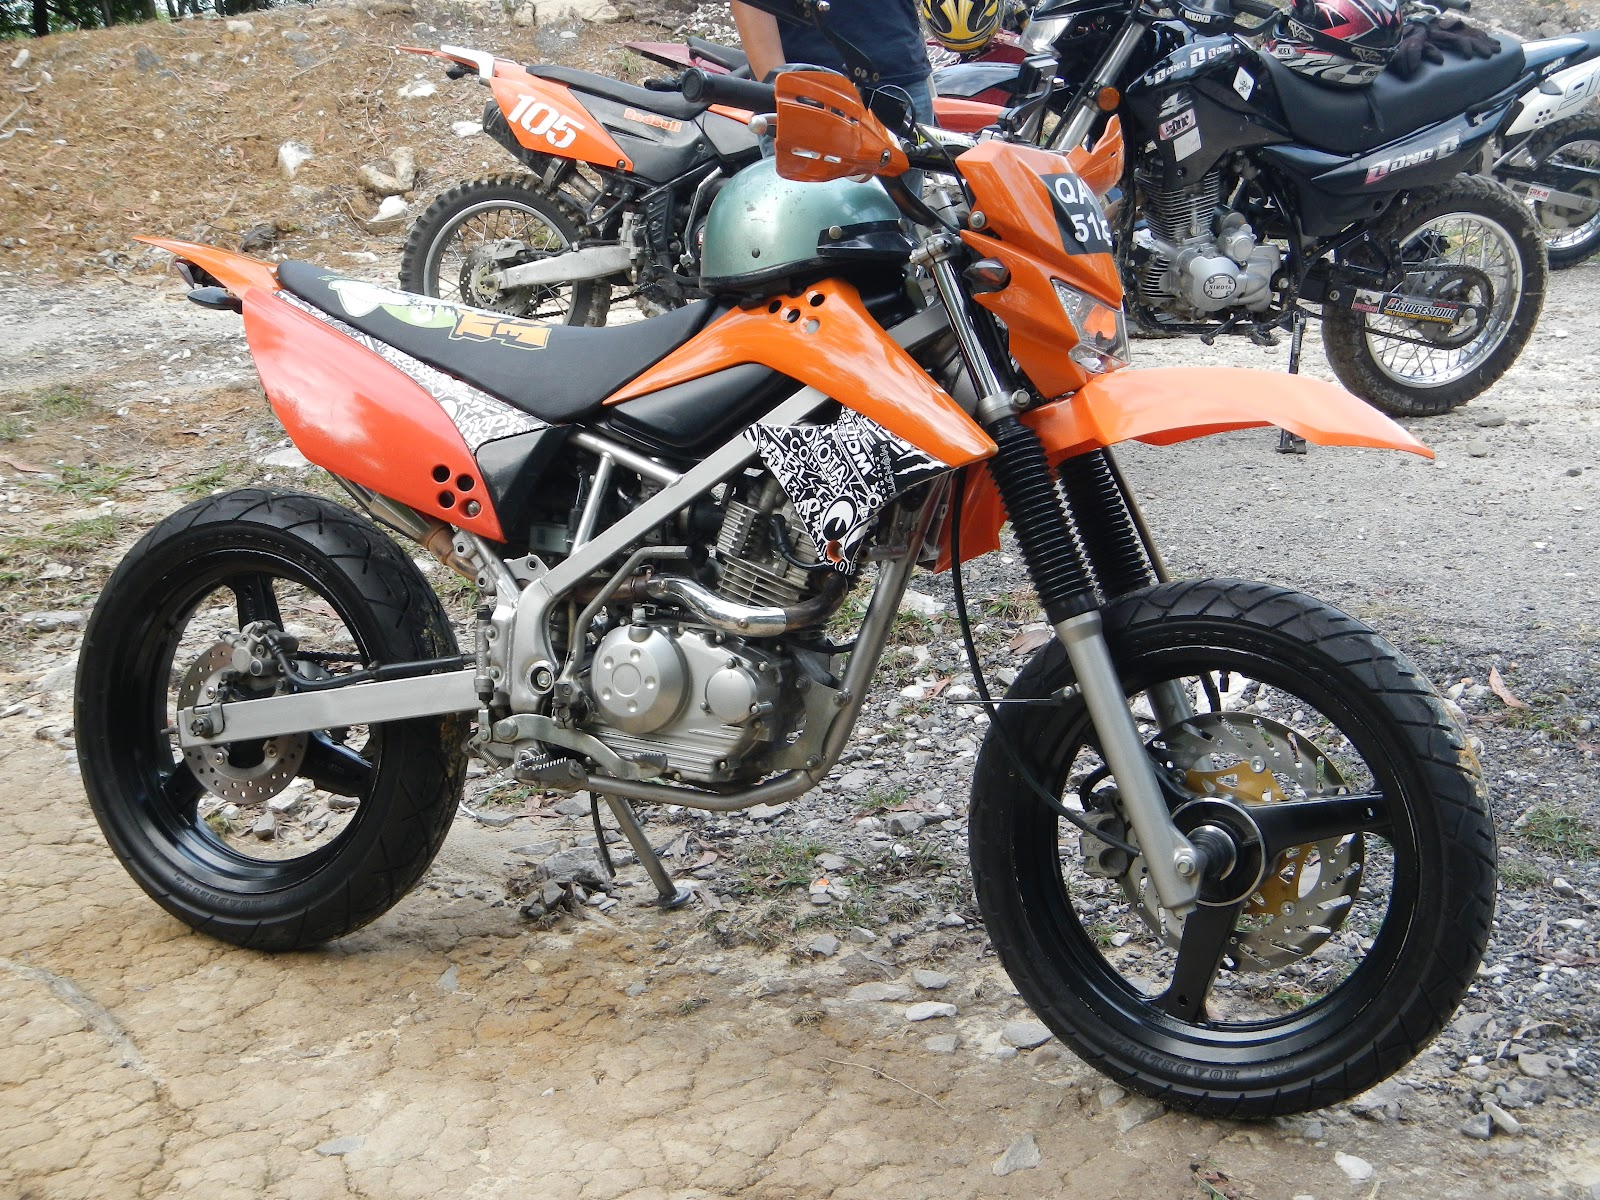 KLX150s Is A Medium Size Scrambler Bike That Suits Someone Like My Small Guy Big Ambition But Even For With Body The